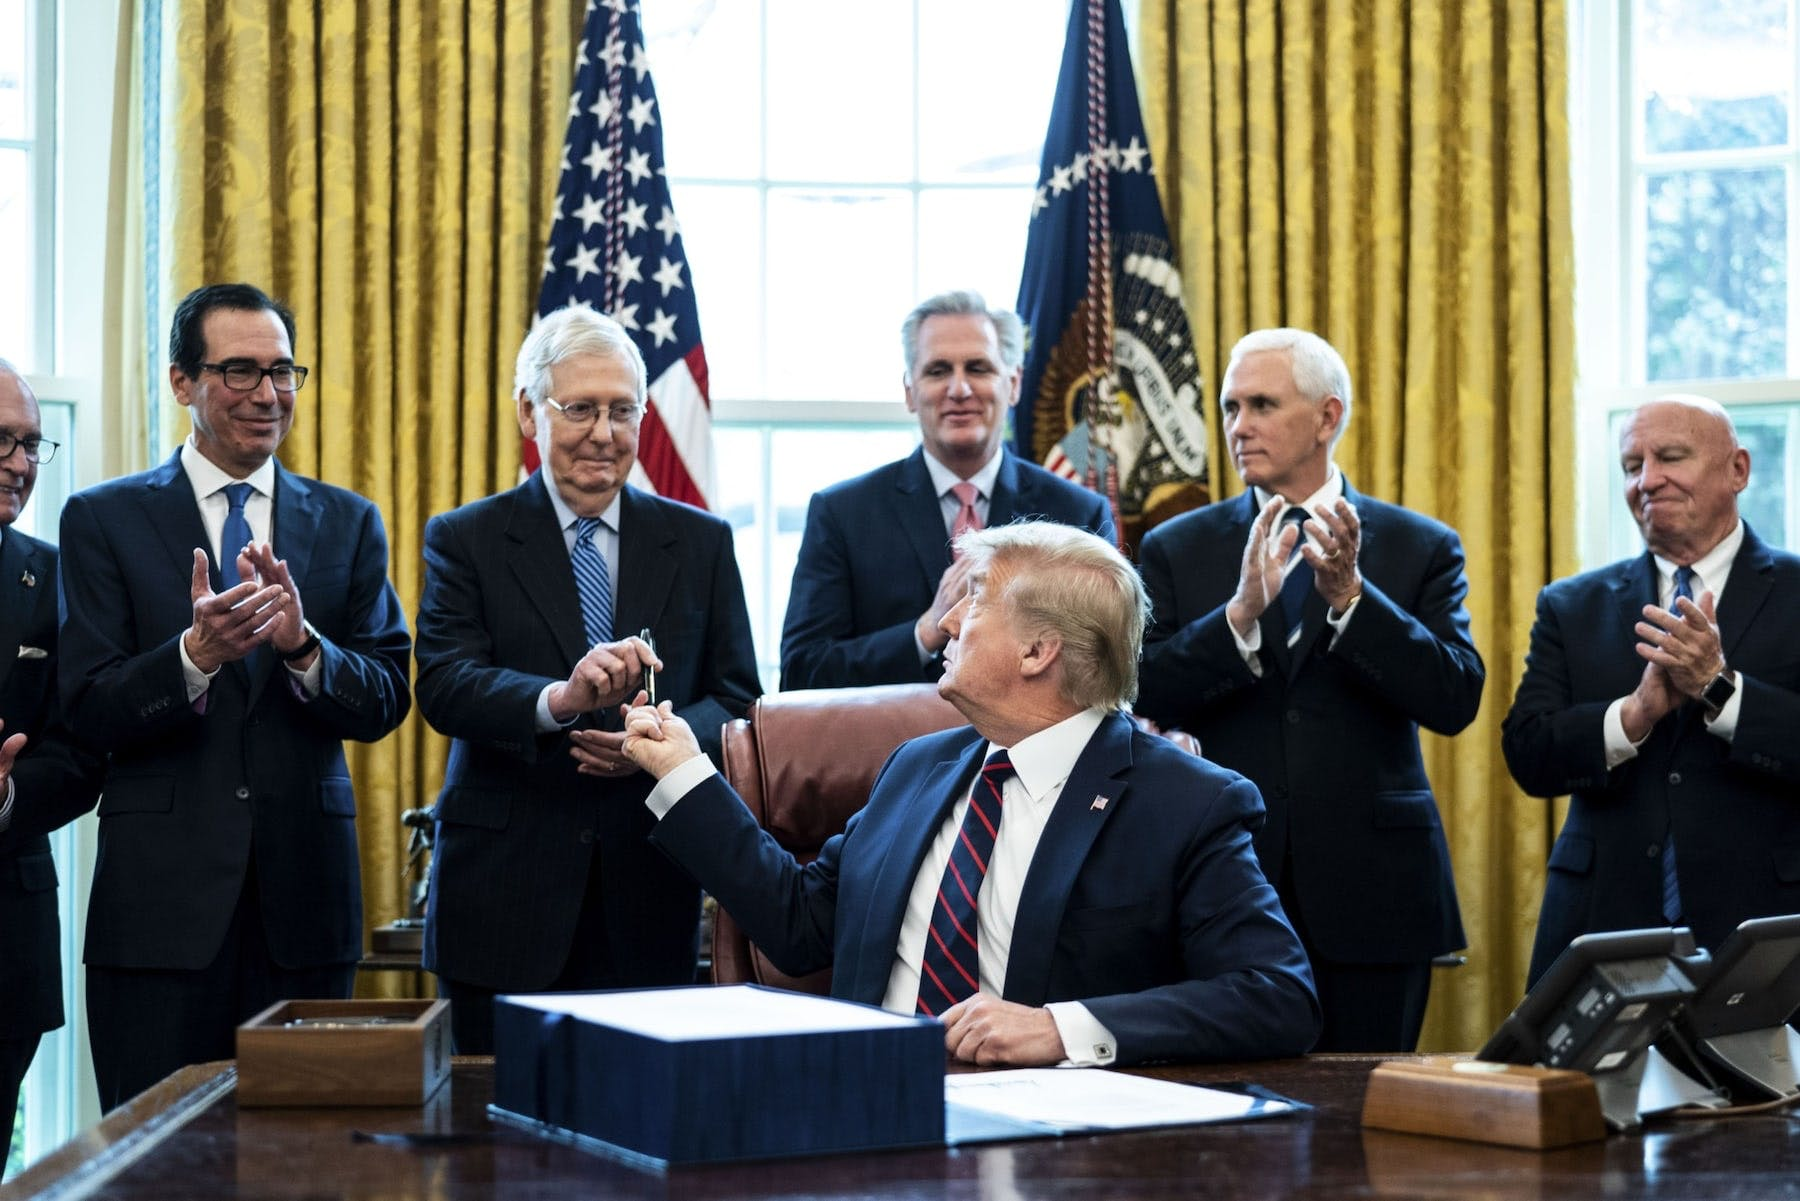 President Donald Trump hands a pen to Senate Majority Leader Mitch McConnell (R-Ky.) after signing the Cares Act on March 27.